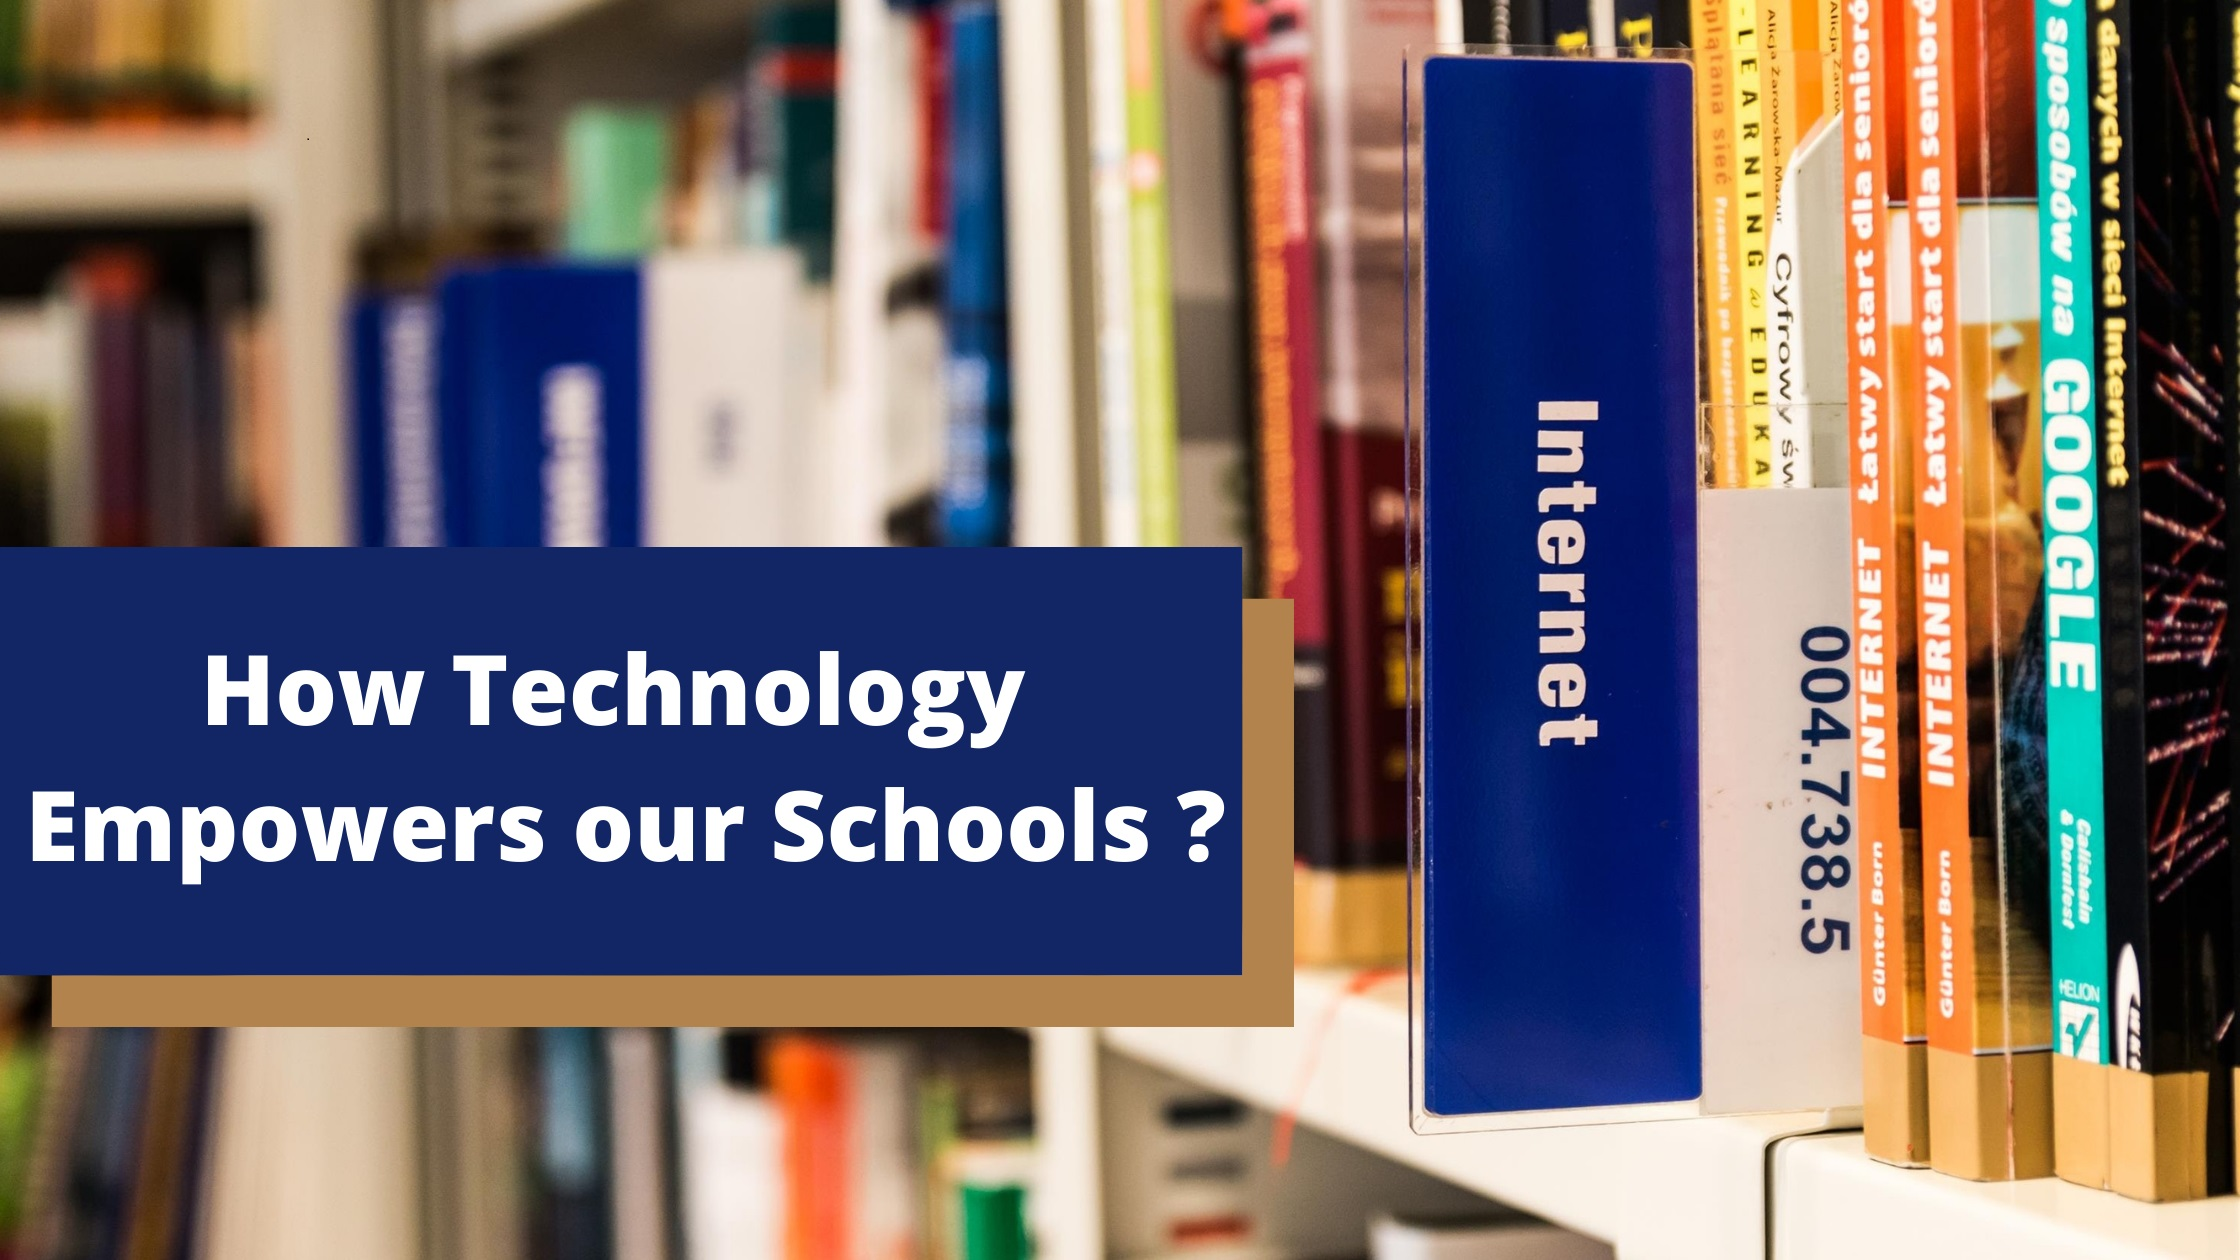 How Technology Empowers our Schools?